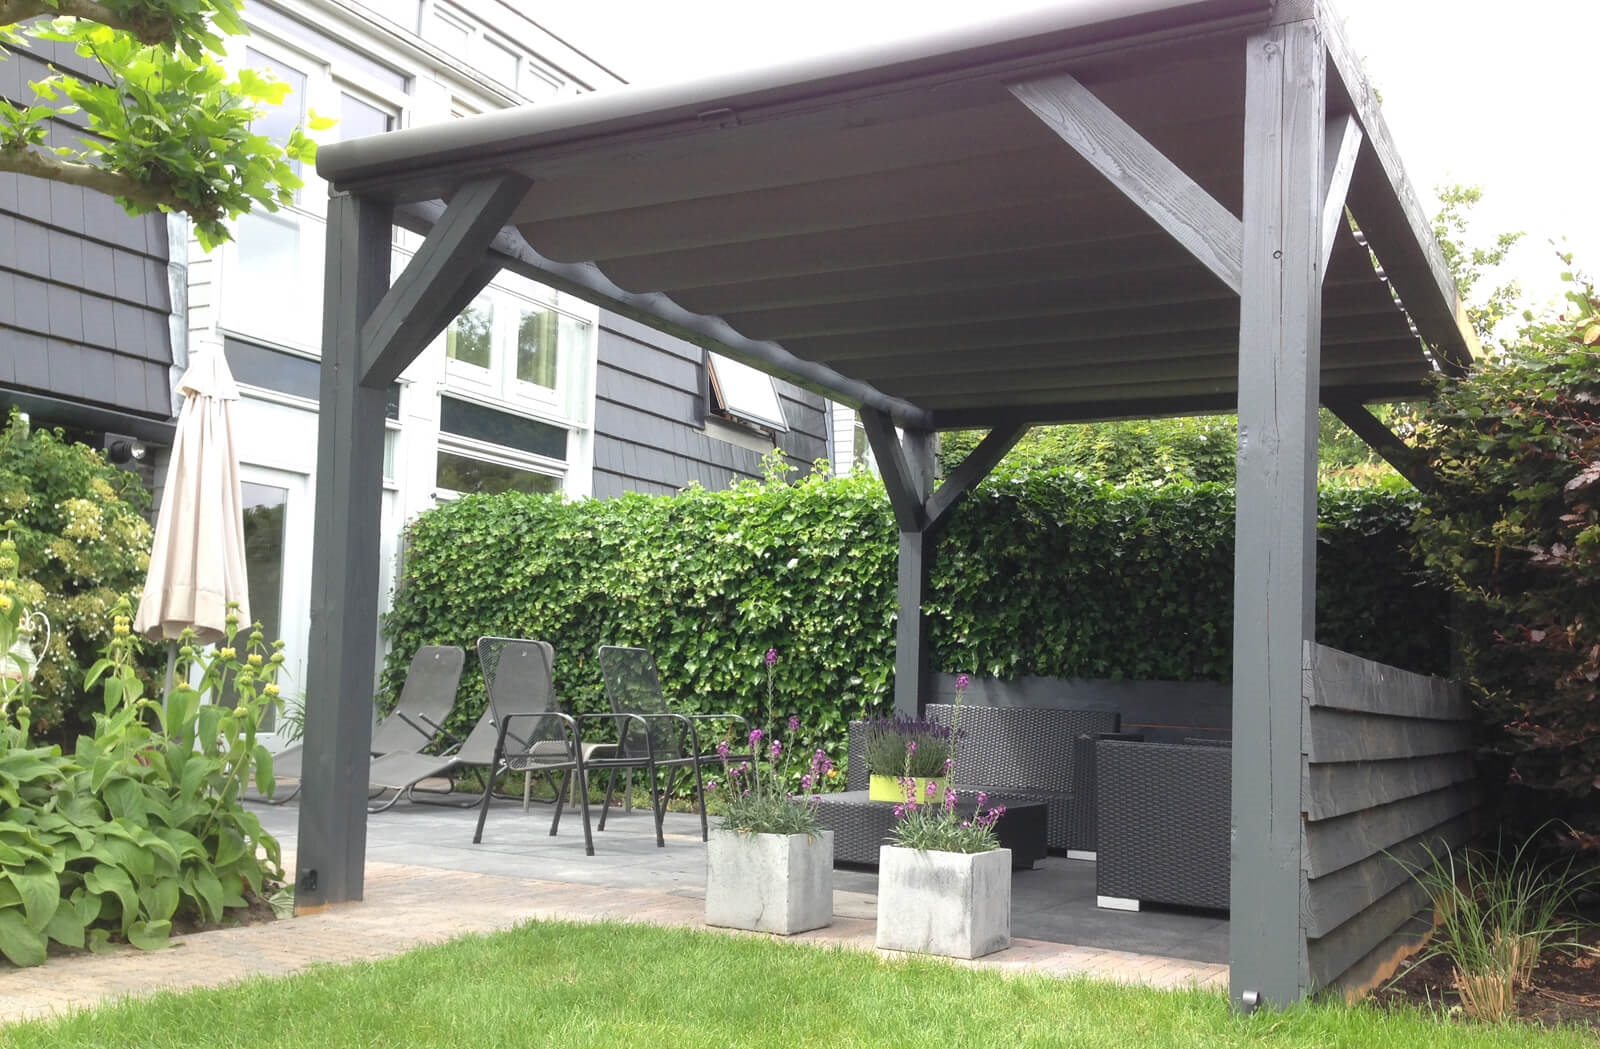 Outdoor luxury! LuxxOut Solem overkapping met zonwering #blog #tuin